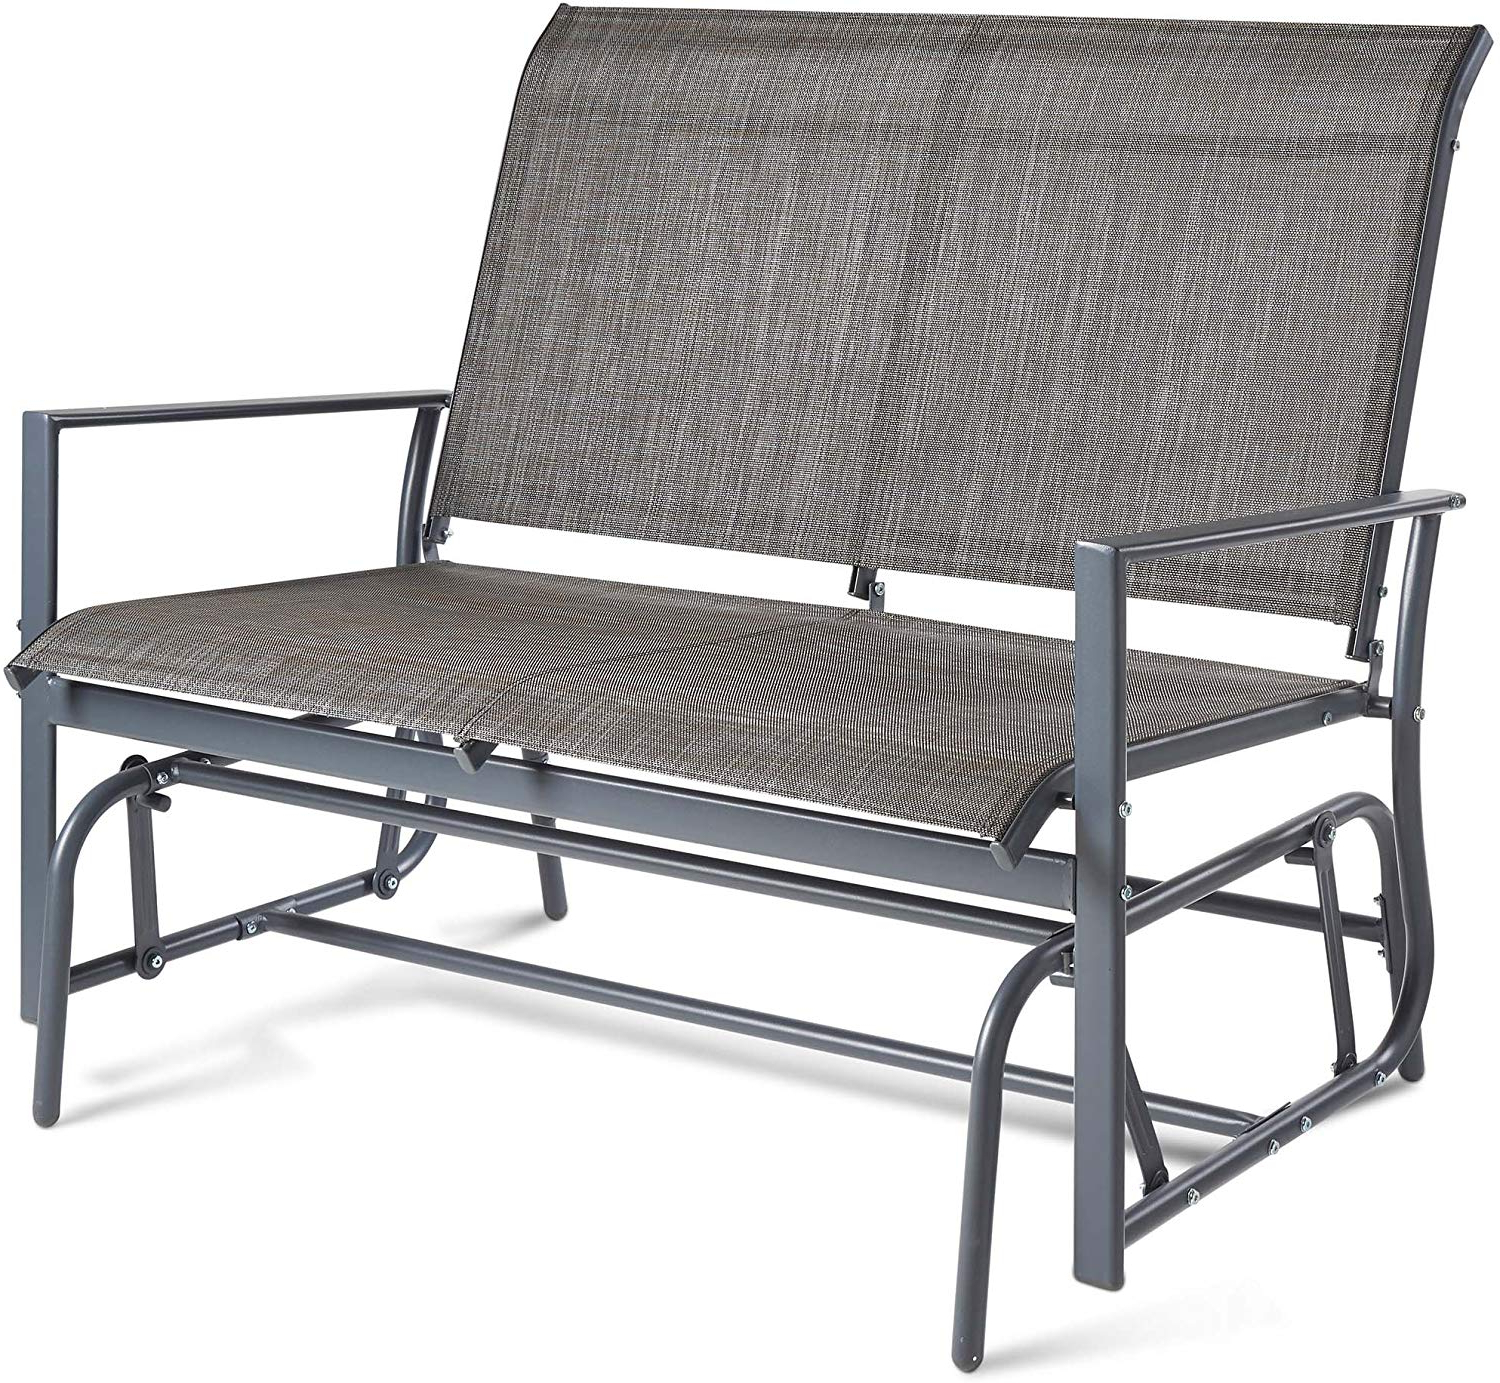 Most Popular Vonhaus 2 Seater Garden Glider Bench – Grey Textoline/mesh In Outdoor Fabric Glider Benches (View 25 of 30)